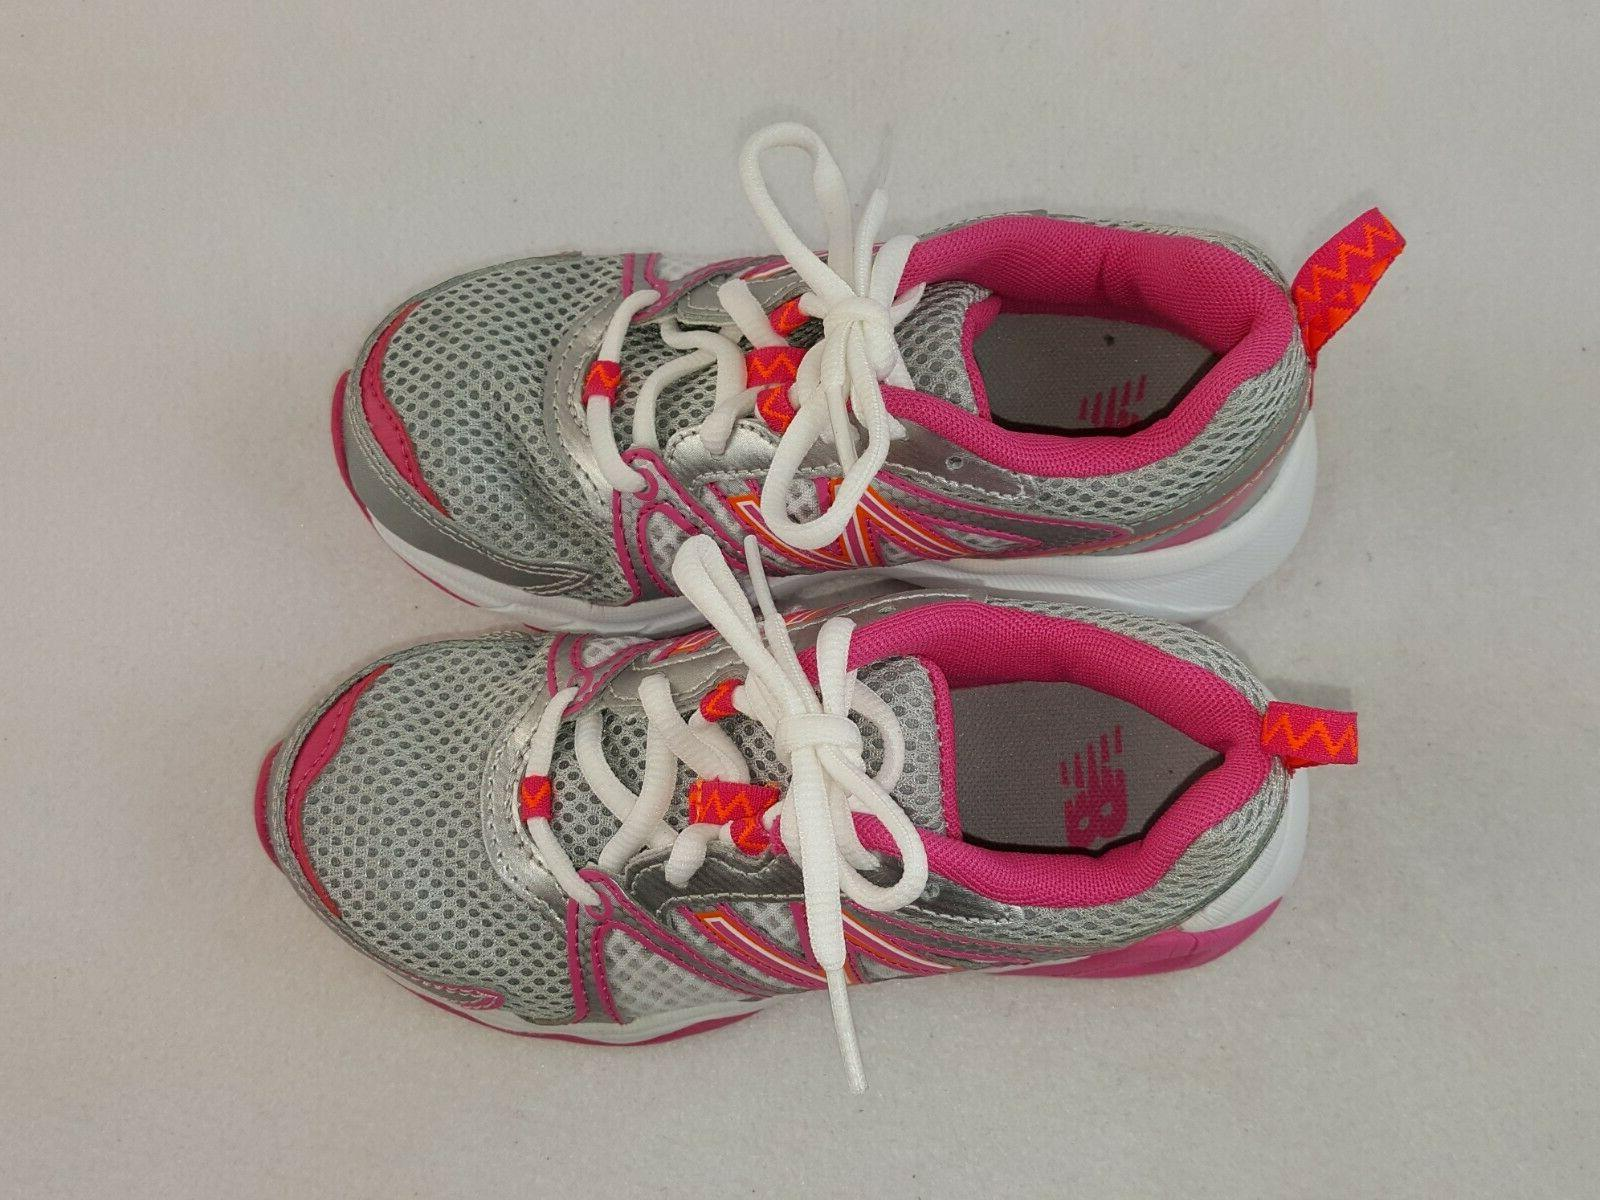 New Balance Kids Size Wide, Sneakers